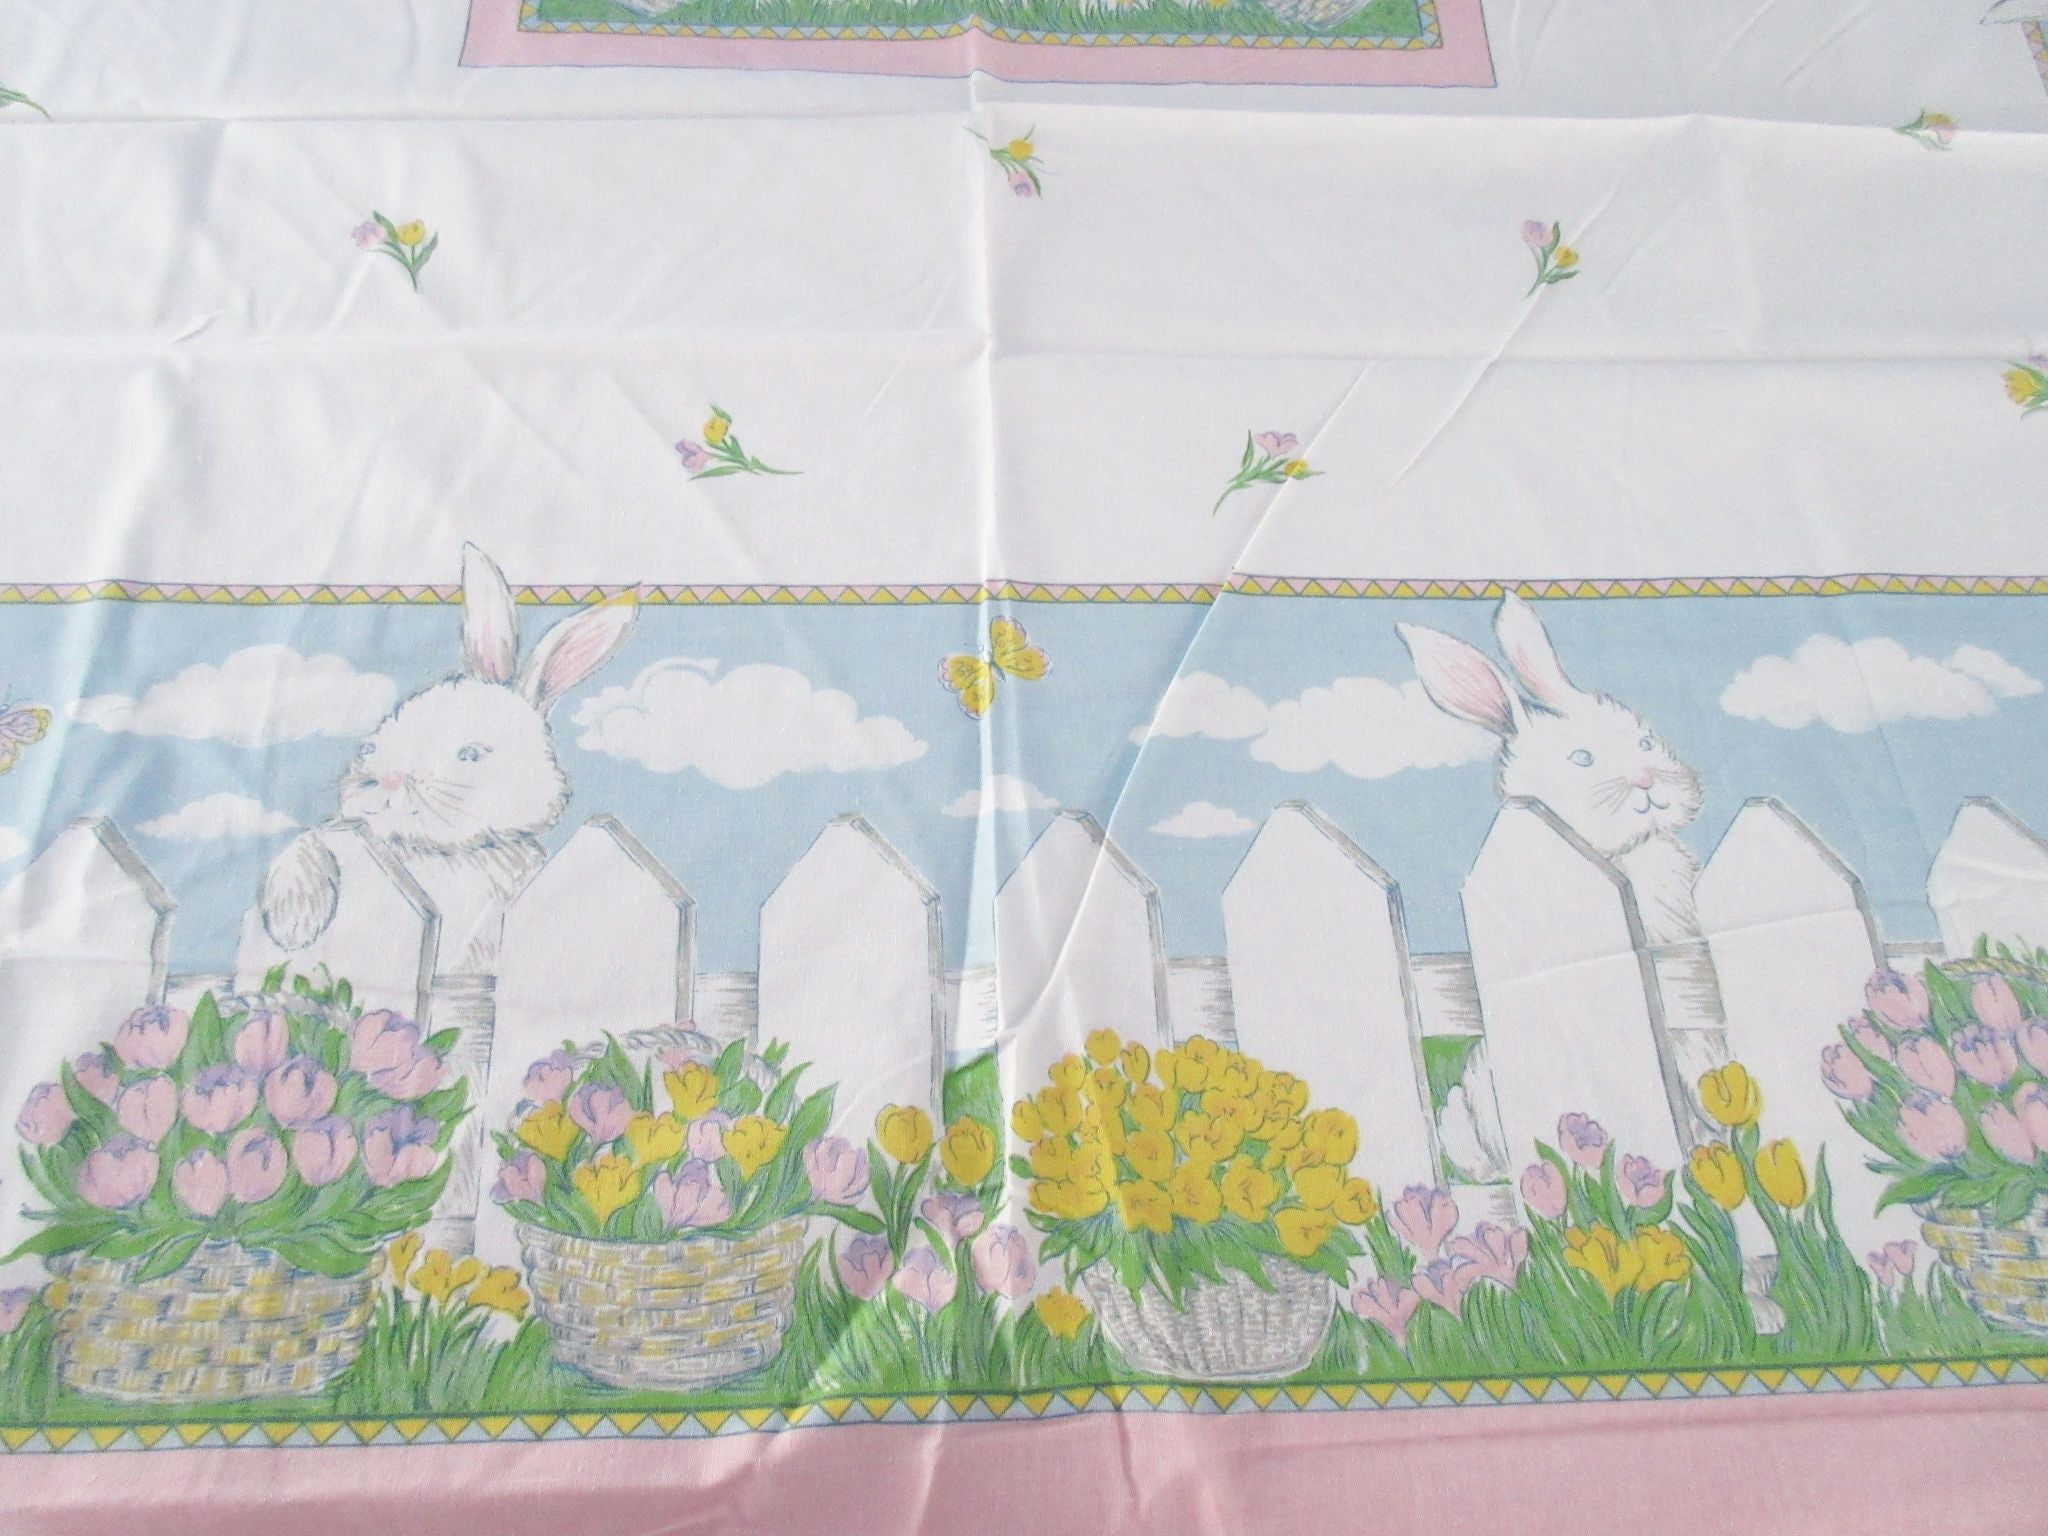 Square Retro Easter Bunny Fence Tulips NOS Novelty Vintage Printed Tablecloth (54 X 53)